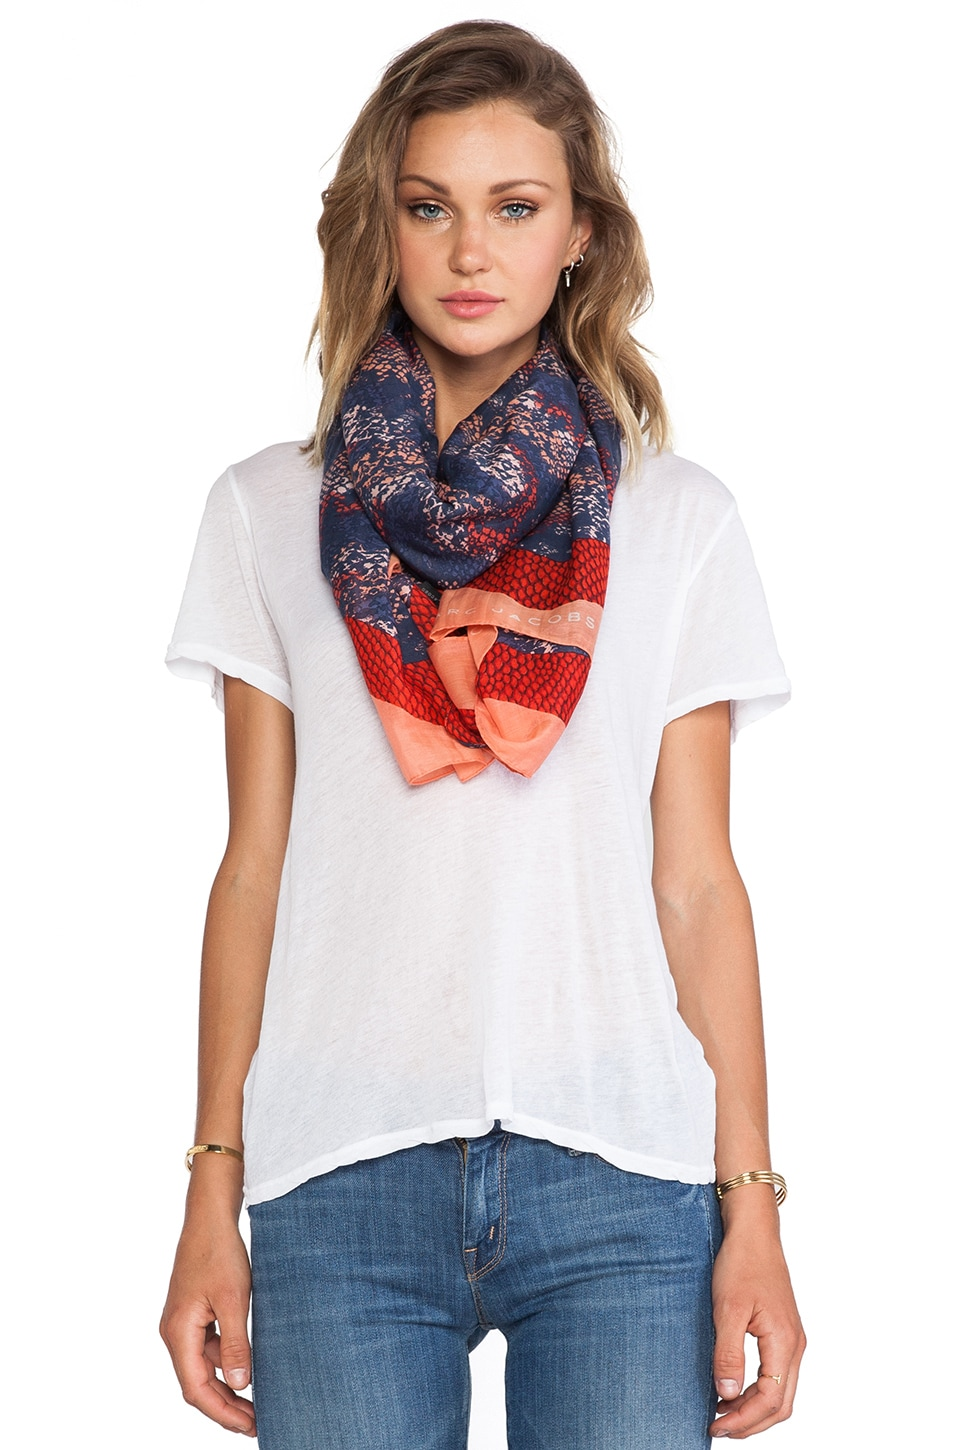 Marc by Marc Jacobs Spray Paint Snake Print Scarf in Rose Bush Multi